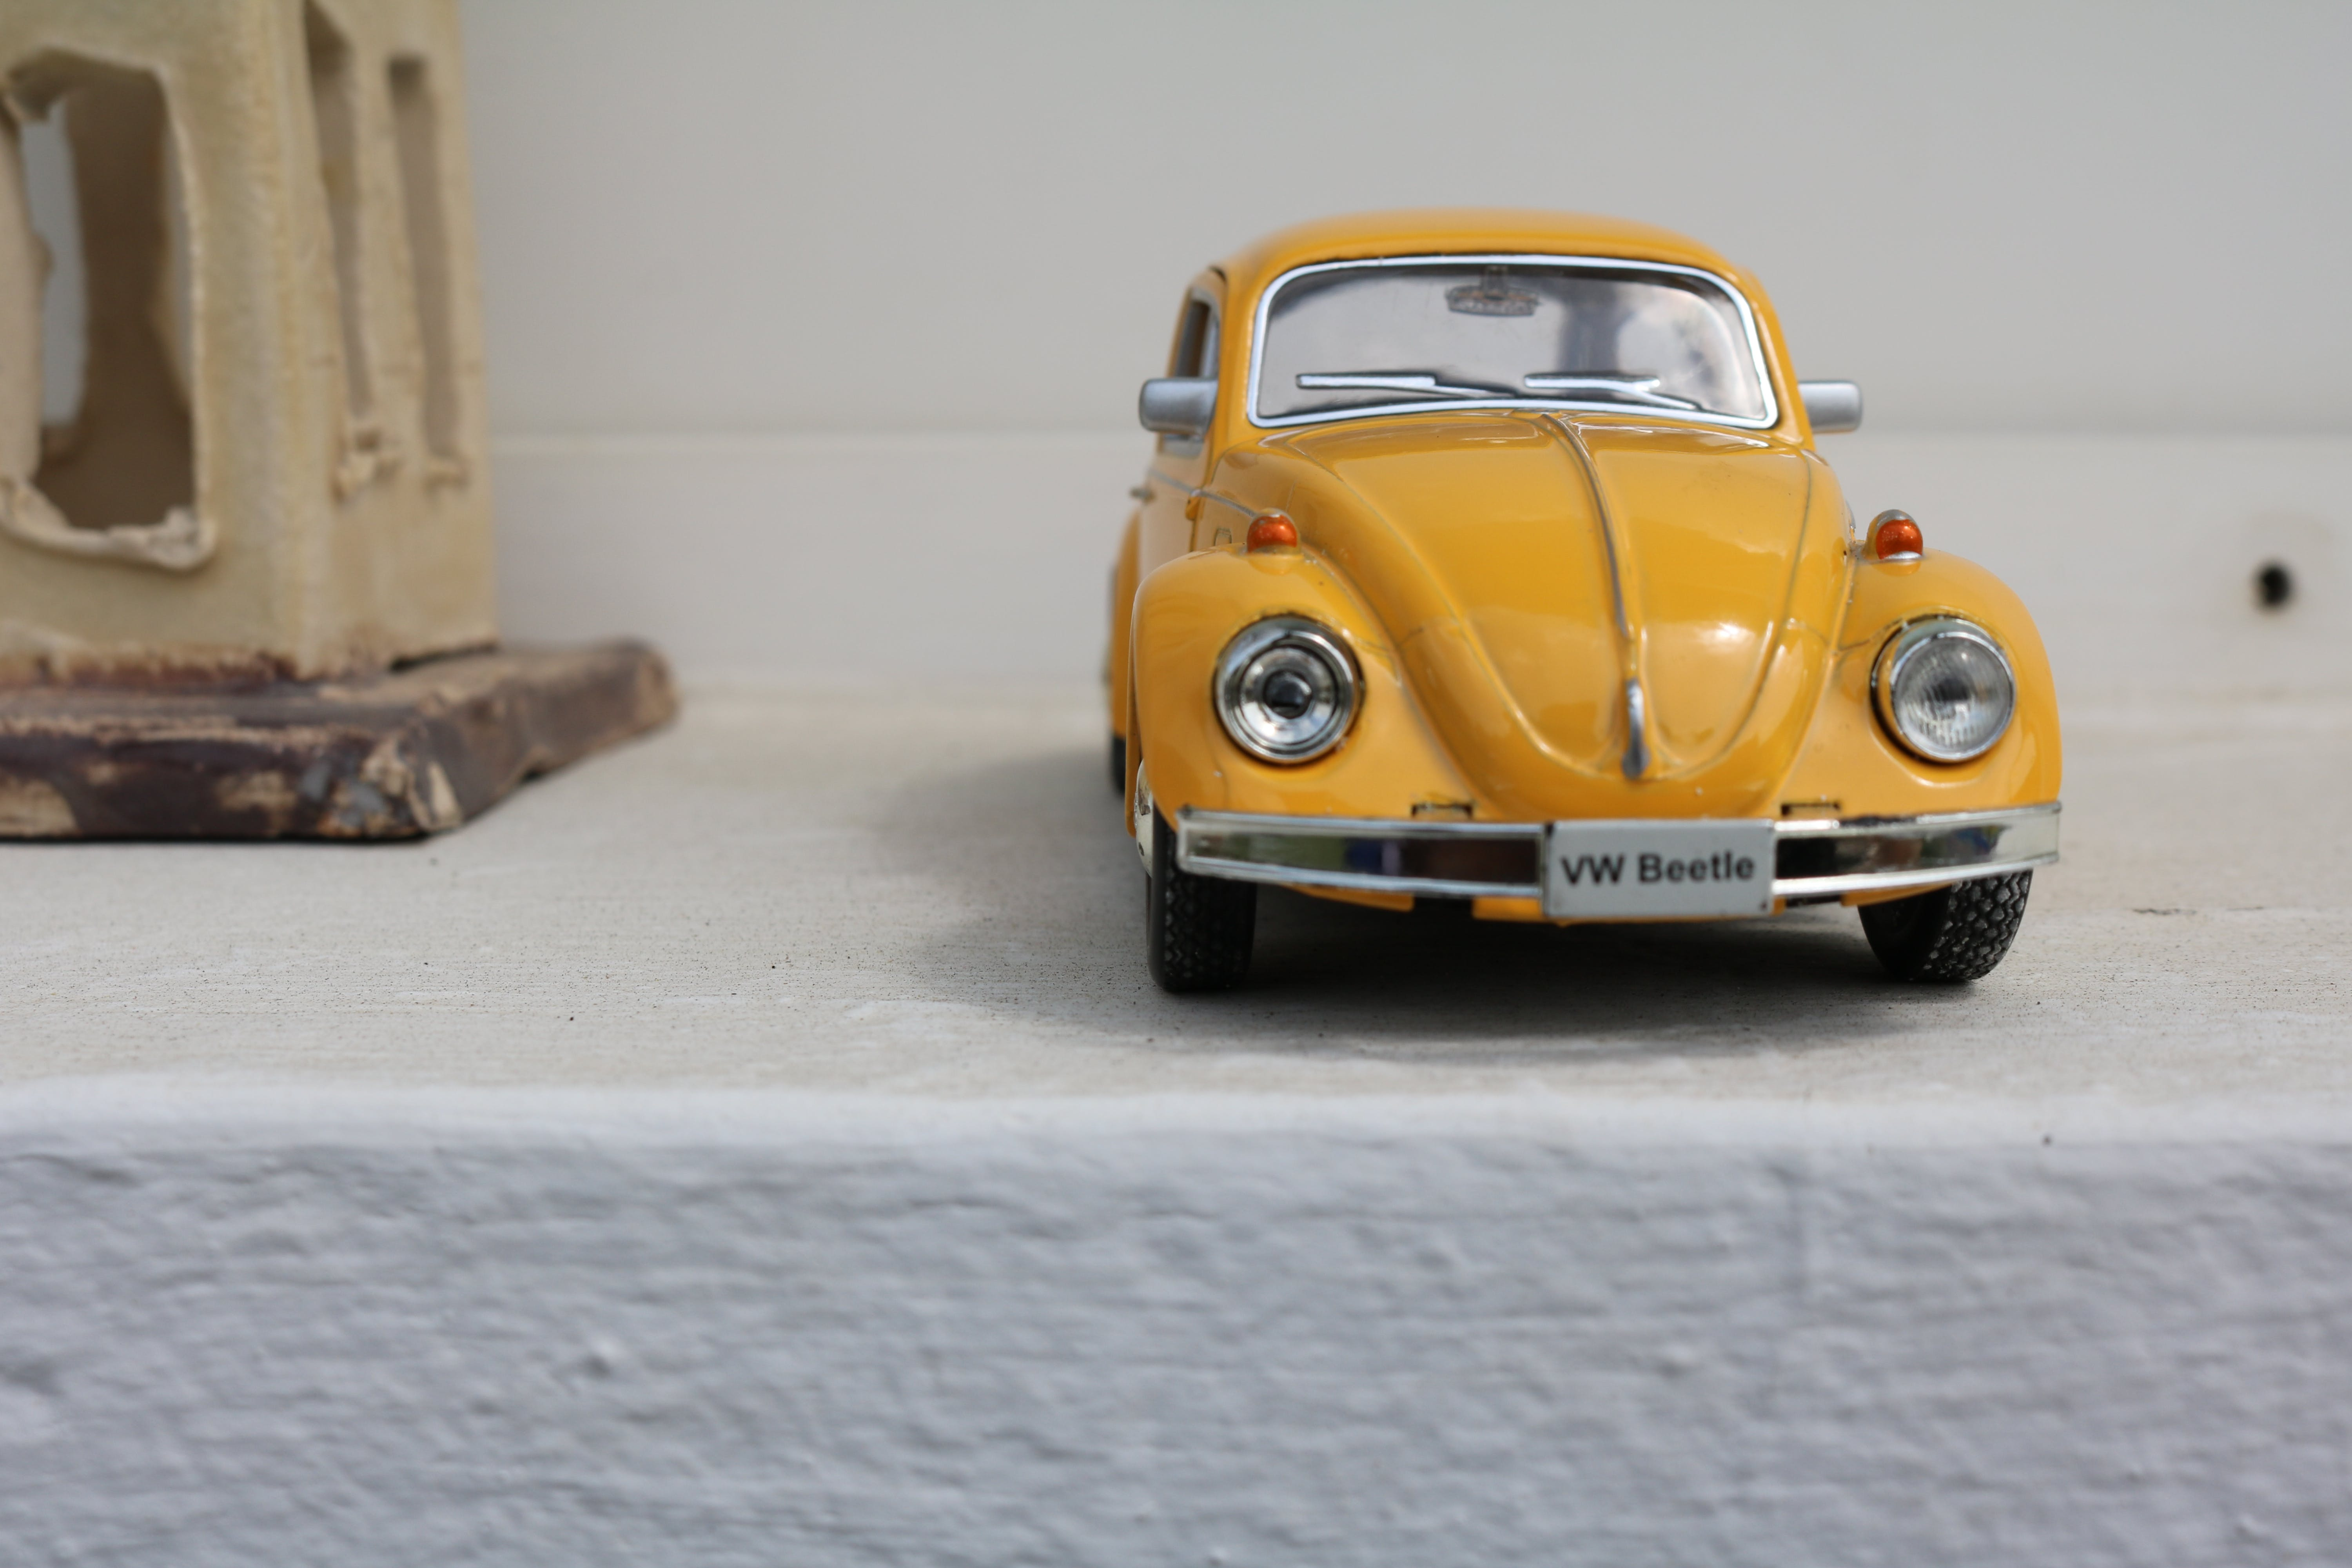 Free stock photo of beetle, bubble car, kids toy, miniature